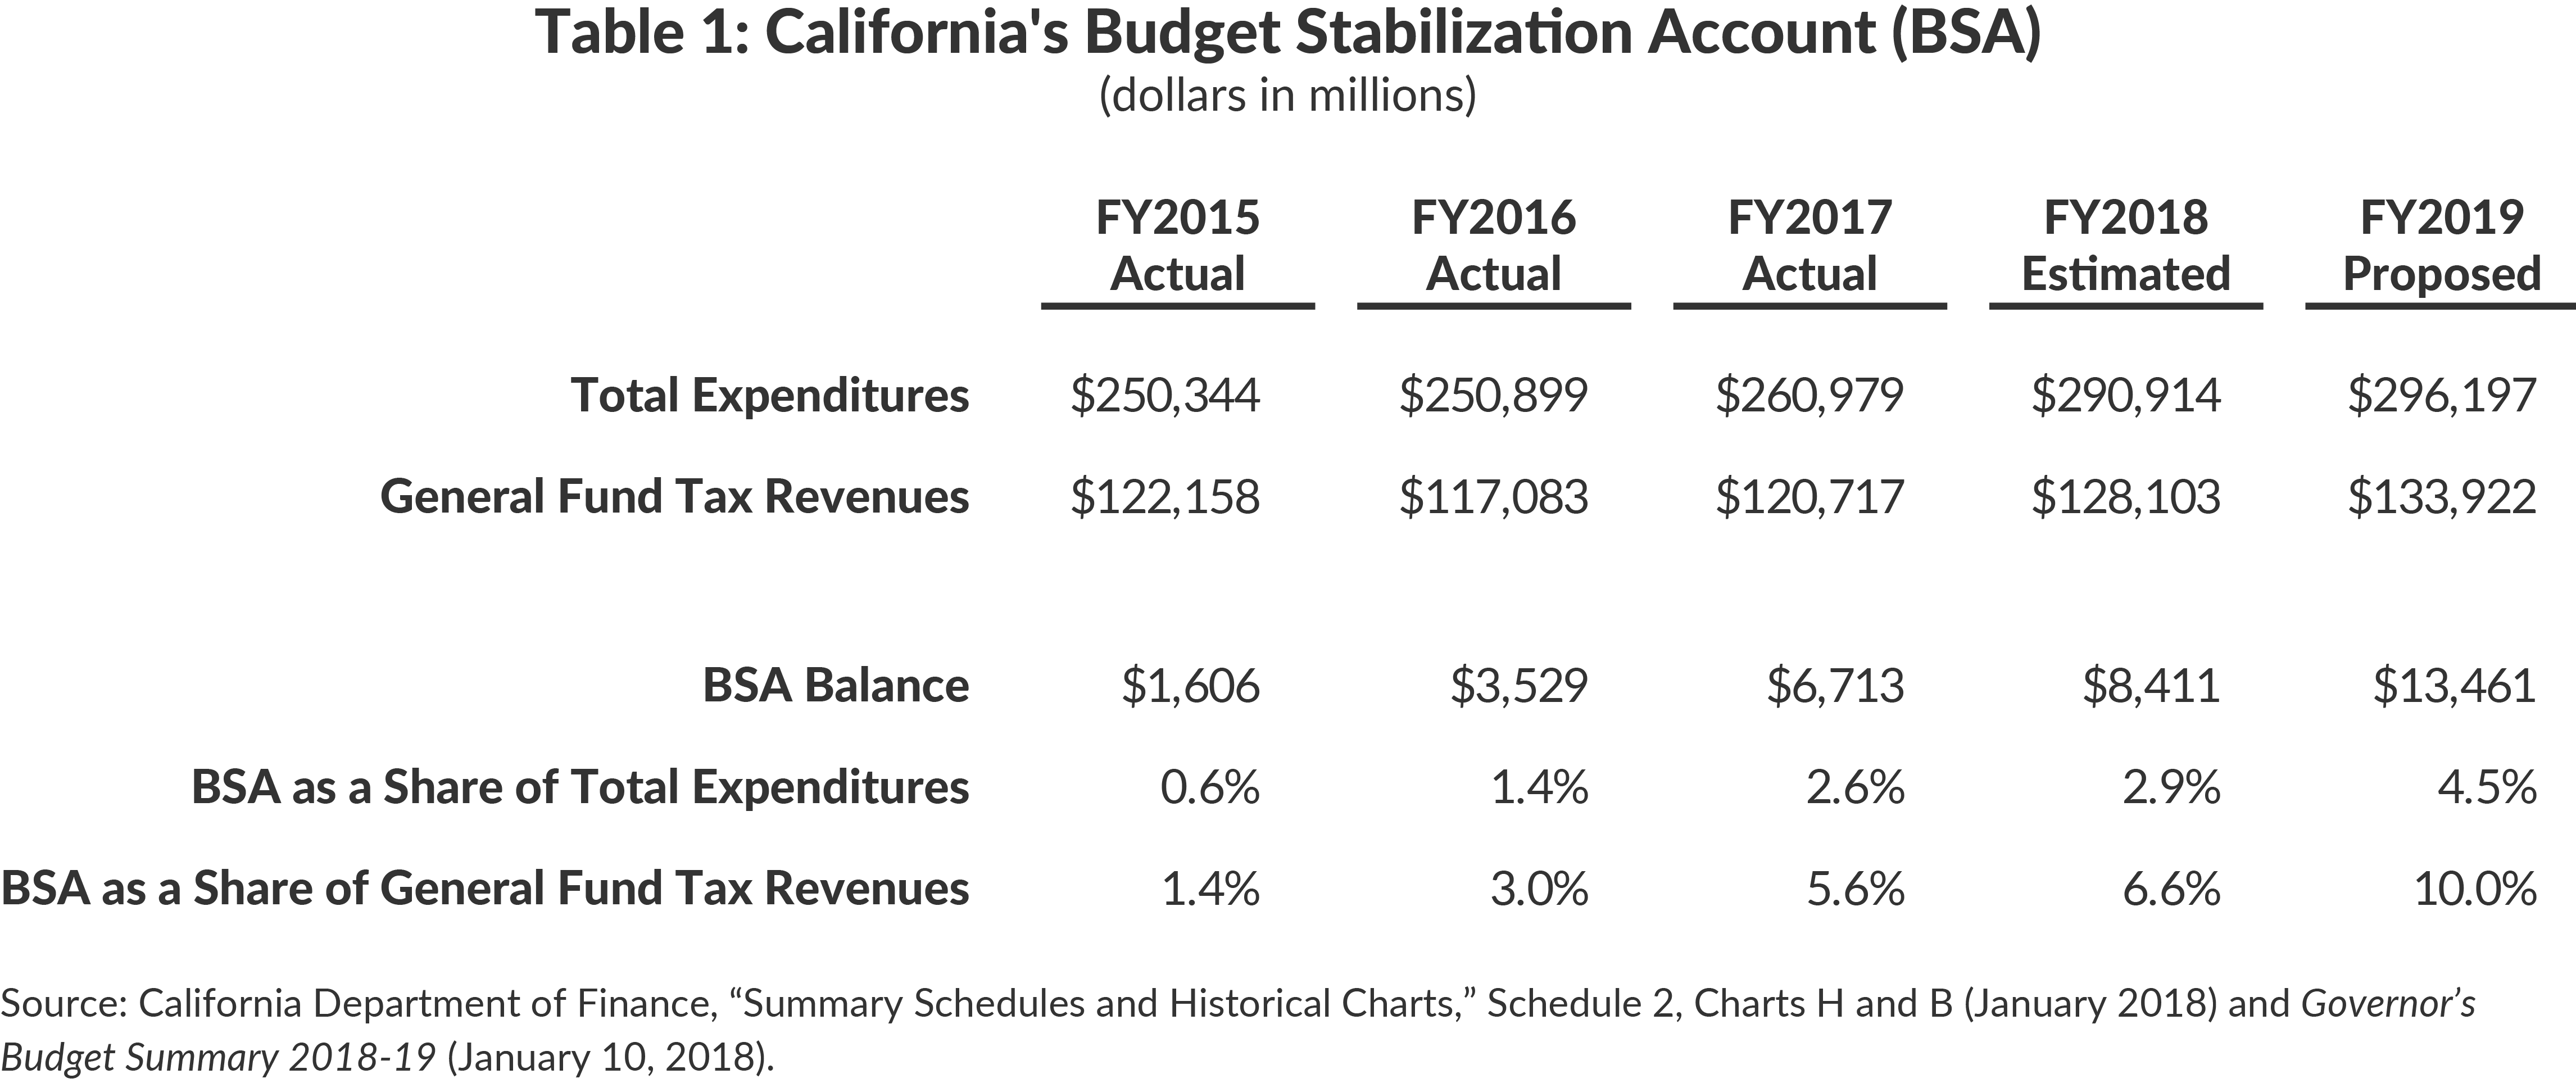 Table 1: California's Budget Stabilization Account (BSA)